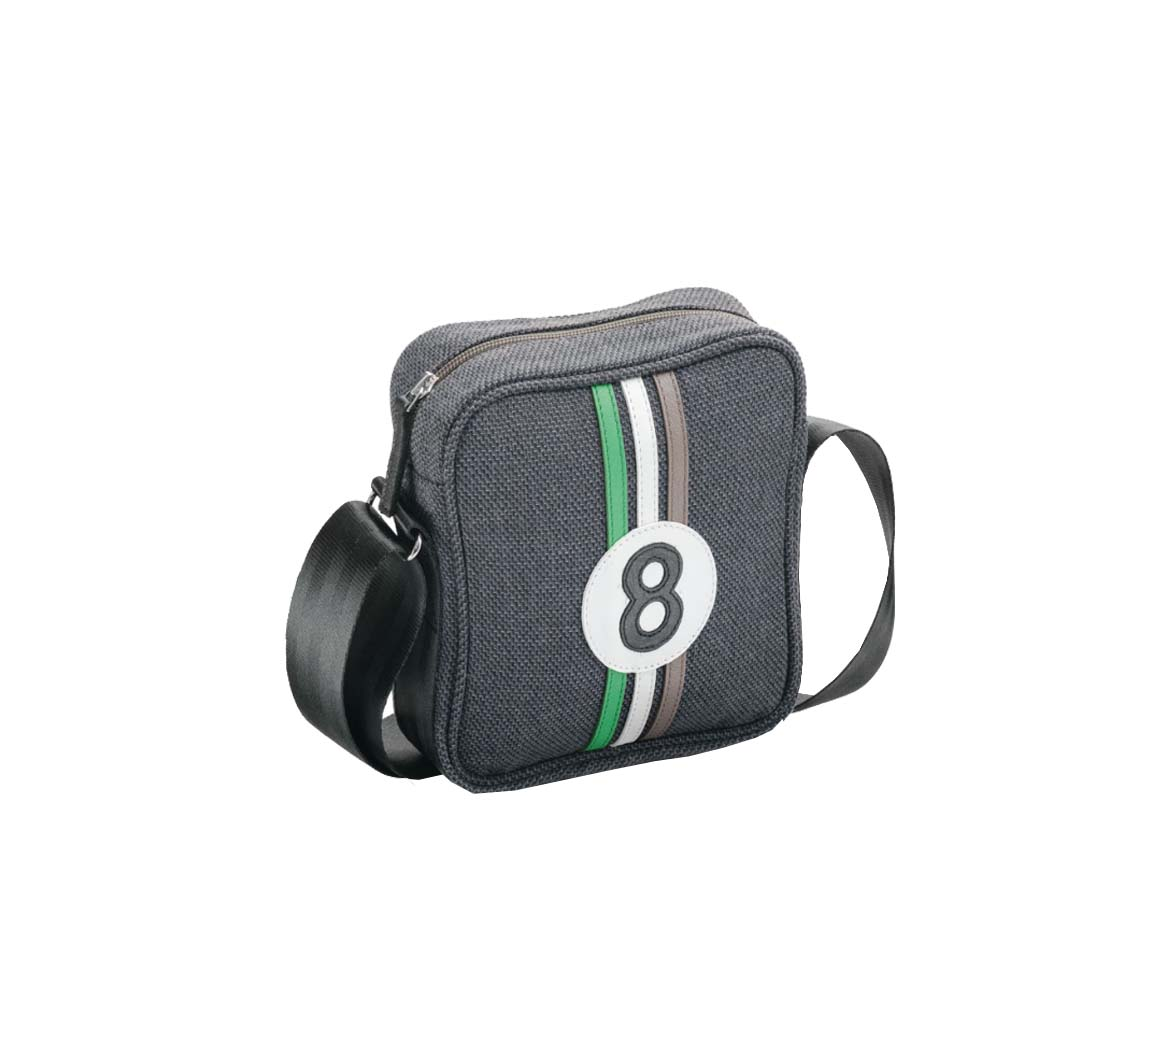 Sac business homme Besace Rino R6